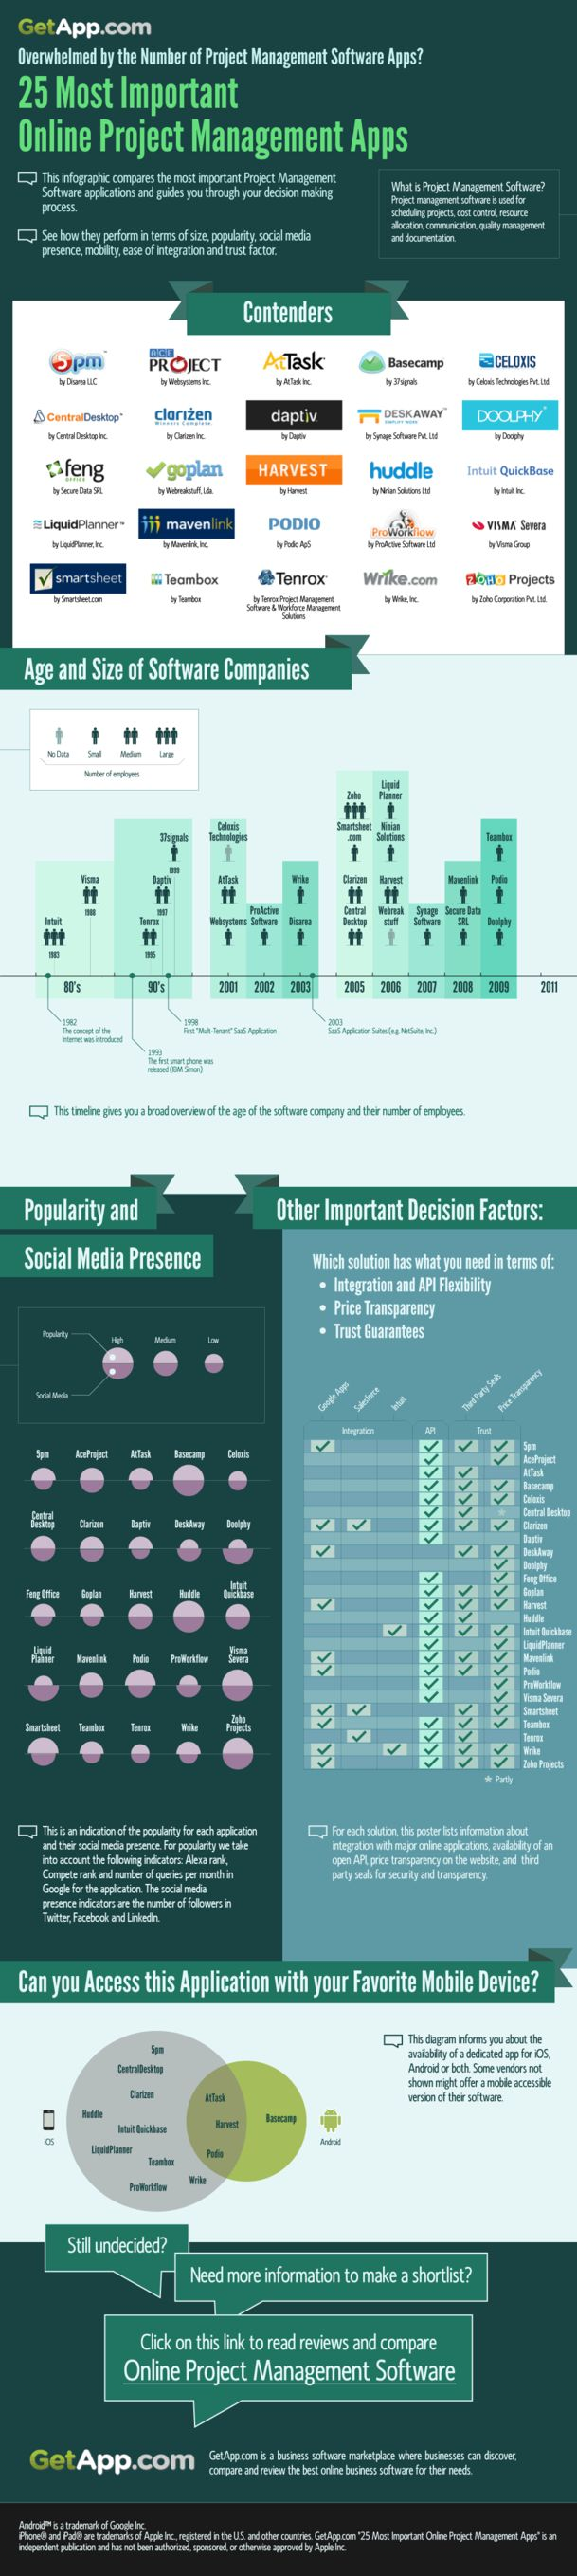 2.11.12 - GetApp.com, an independent marketplace for online business software has released an infographic comparing online project management software solutions to help businesses choose the right product.